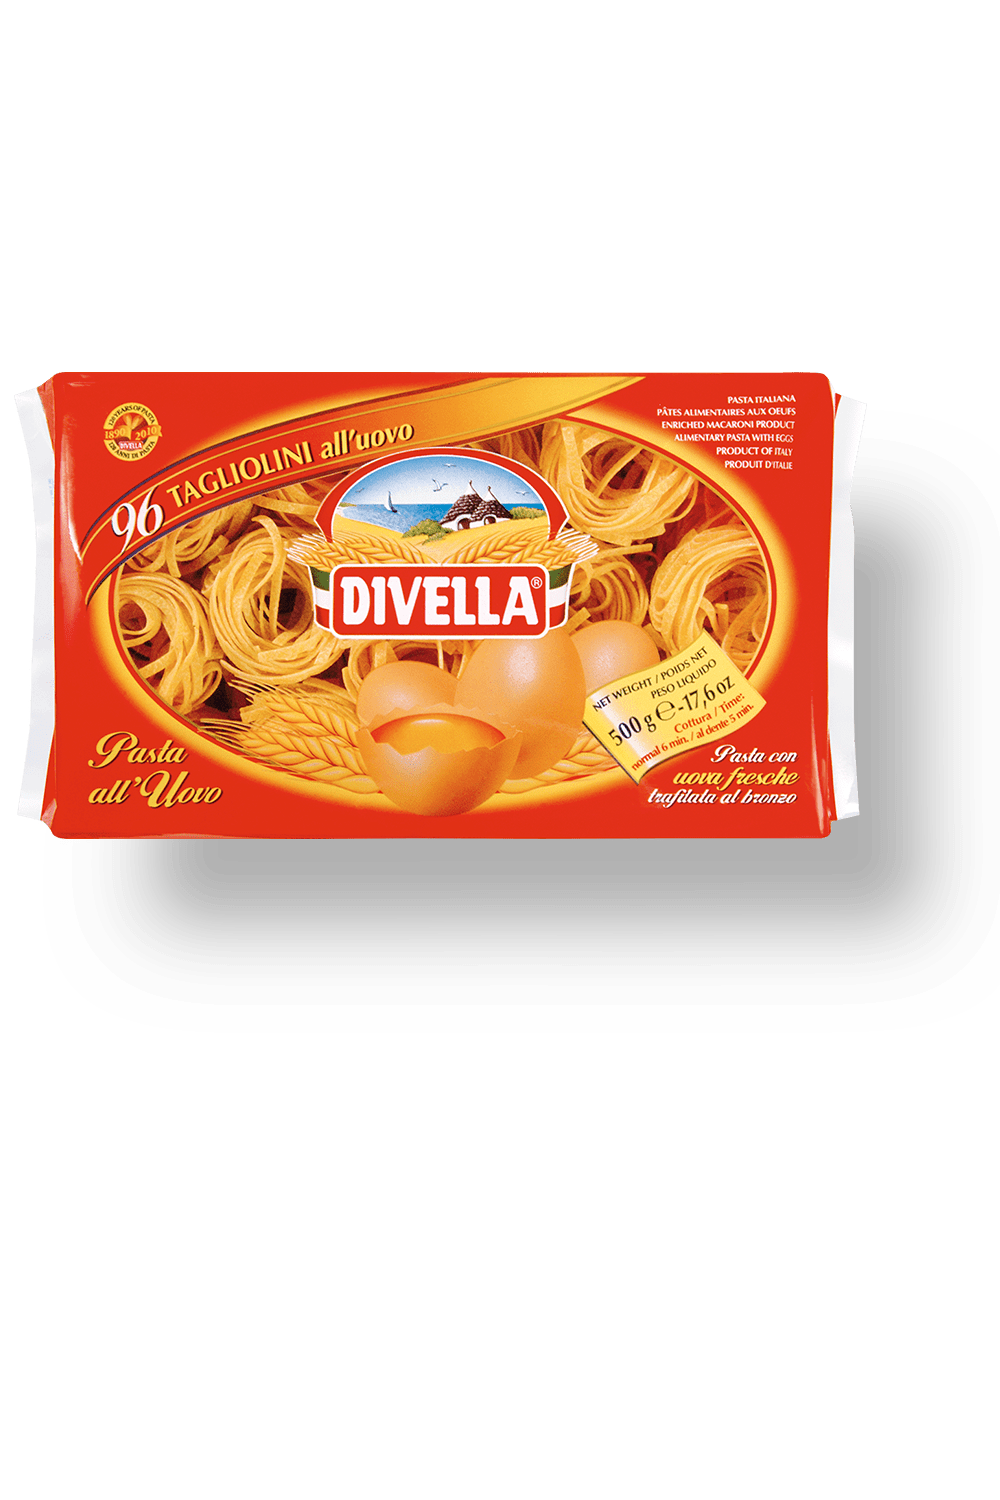 023999-MAC-IT-DIVELLA-TAGLIOLINI-096-ALL-UOVO-500G